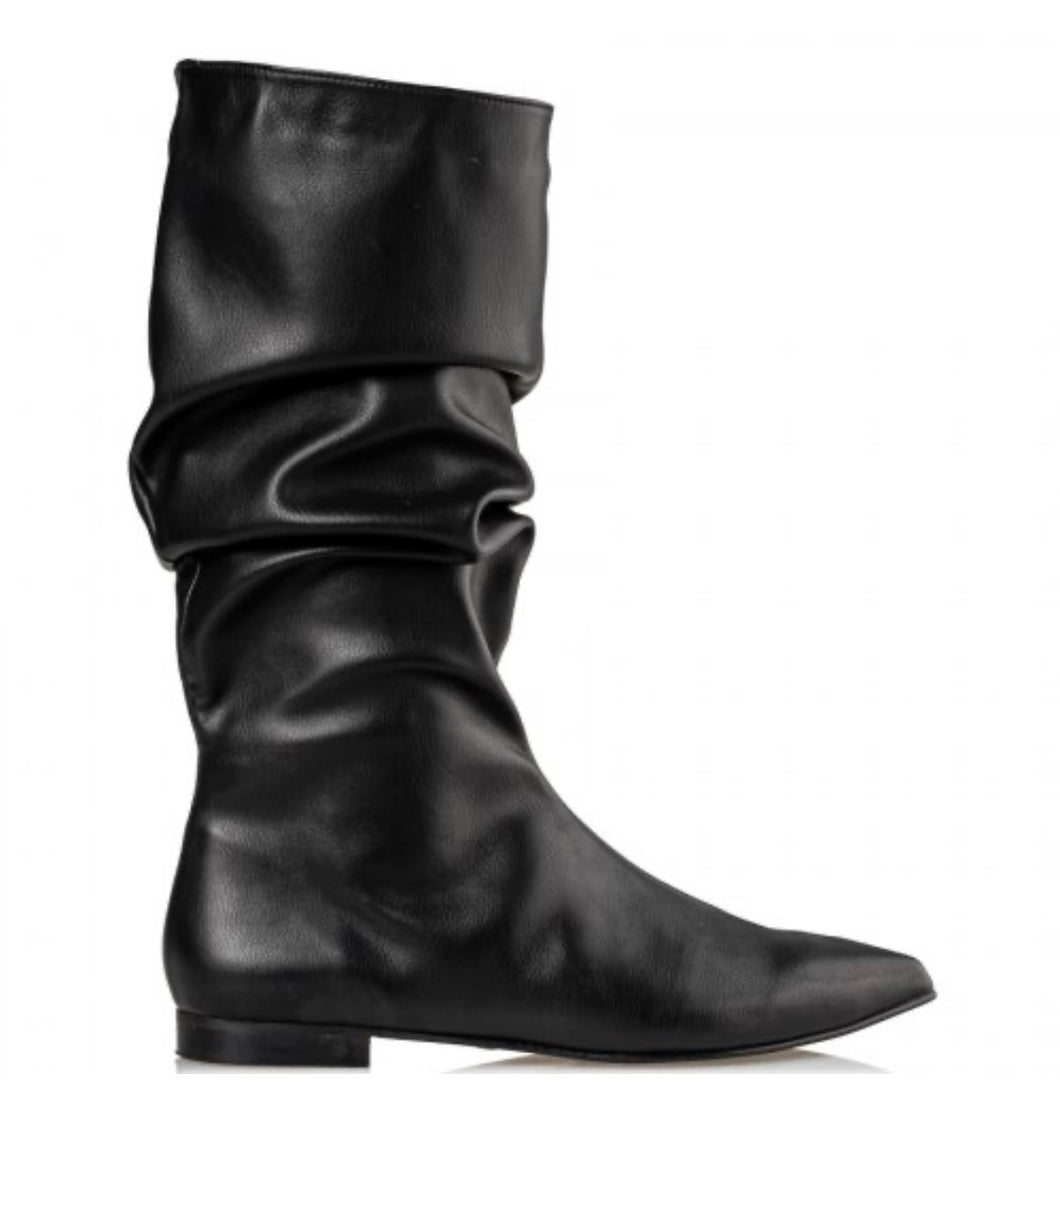 FLAT BOOT UNDER THE KNEE BLACK by MAIRIBOO